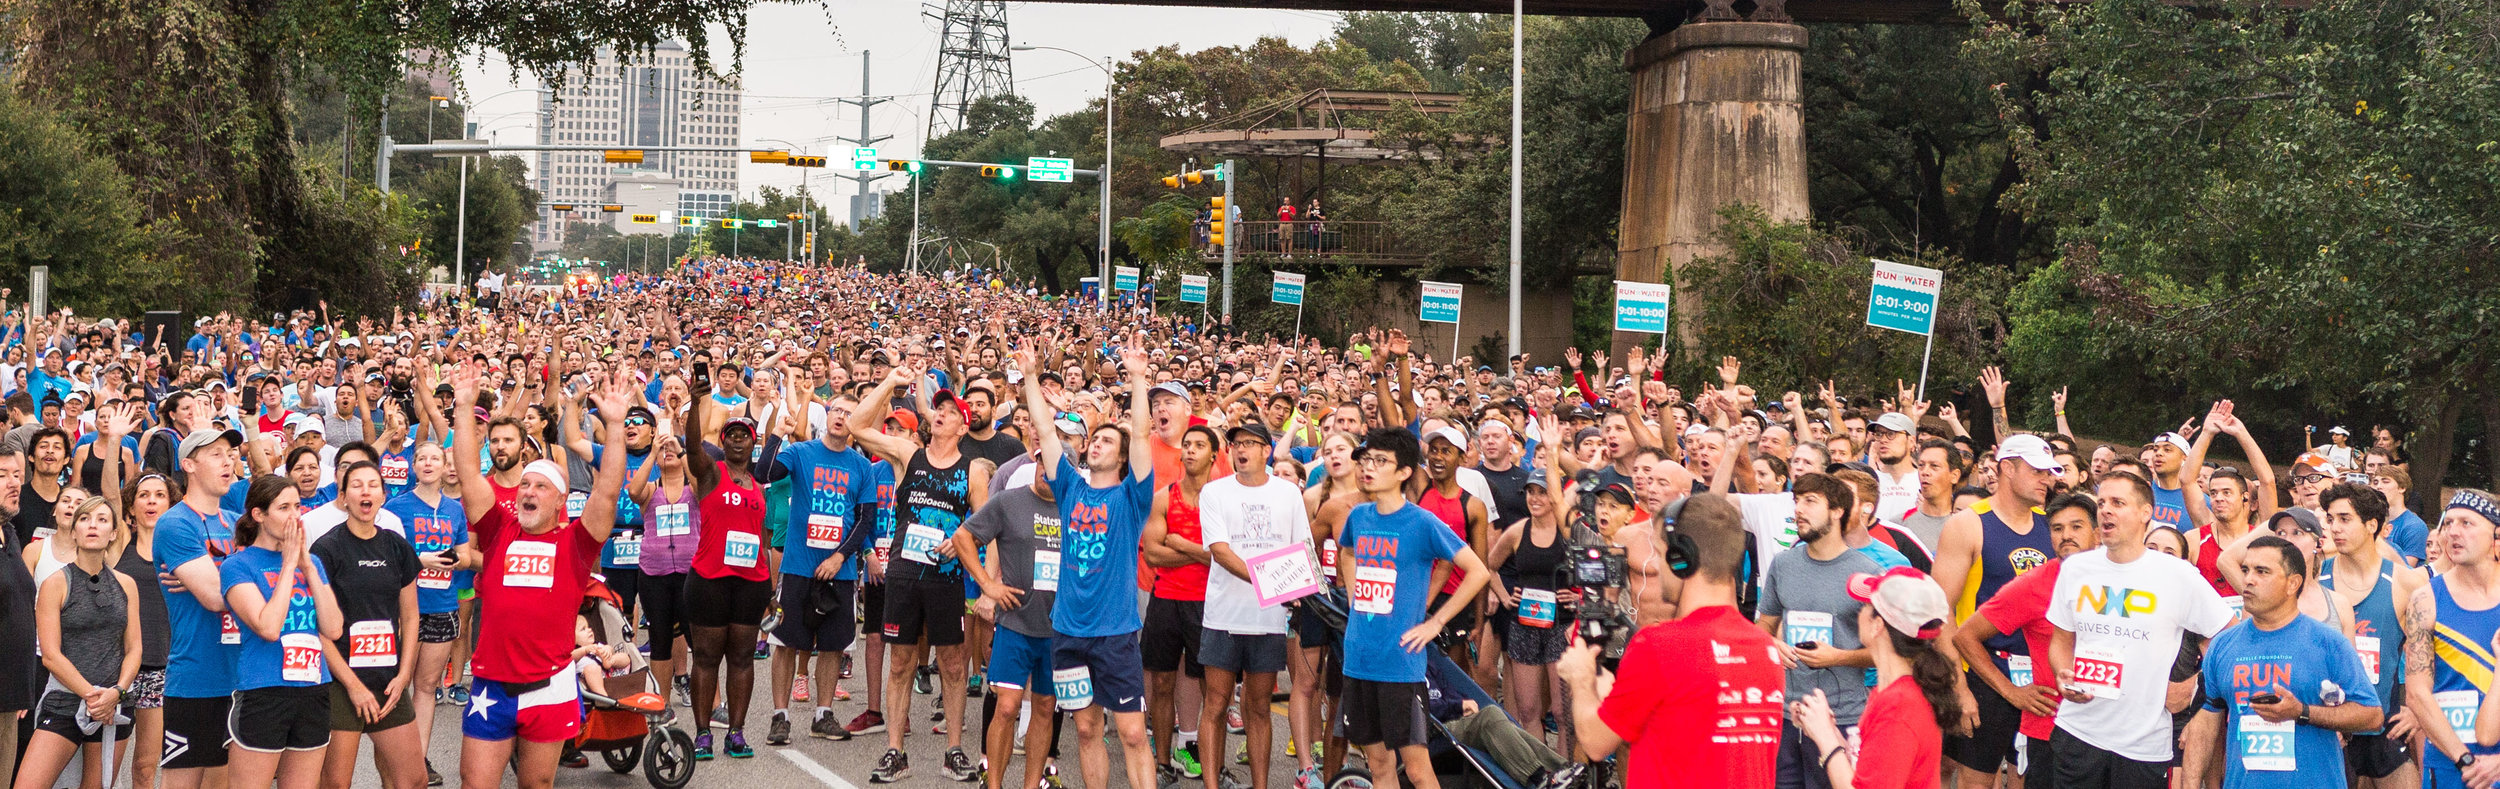 Run For The Water Race Day 2017-5.jpg